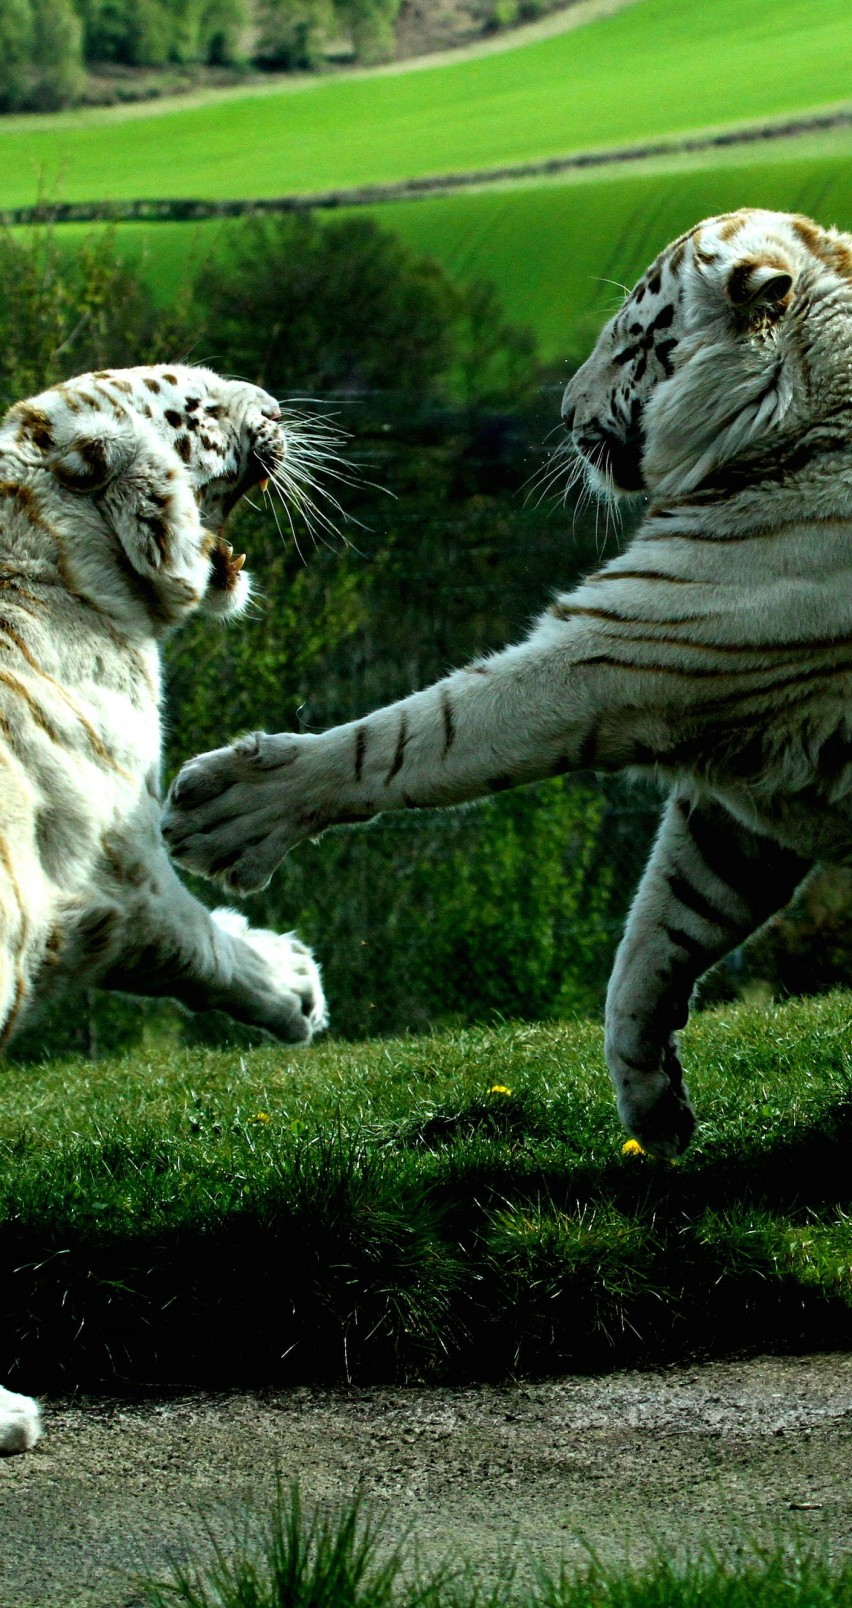 Iphone 6s Wallpaper Hd Download White Tigers Fighting Hd Wallpaper For Iphone 6